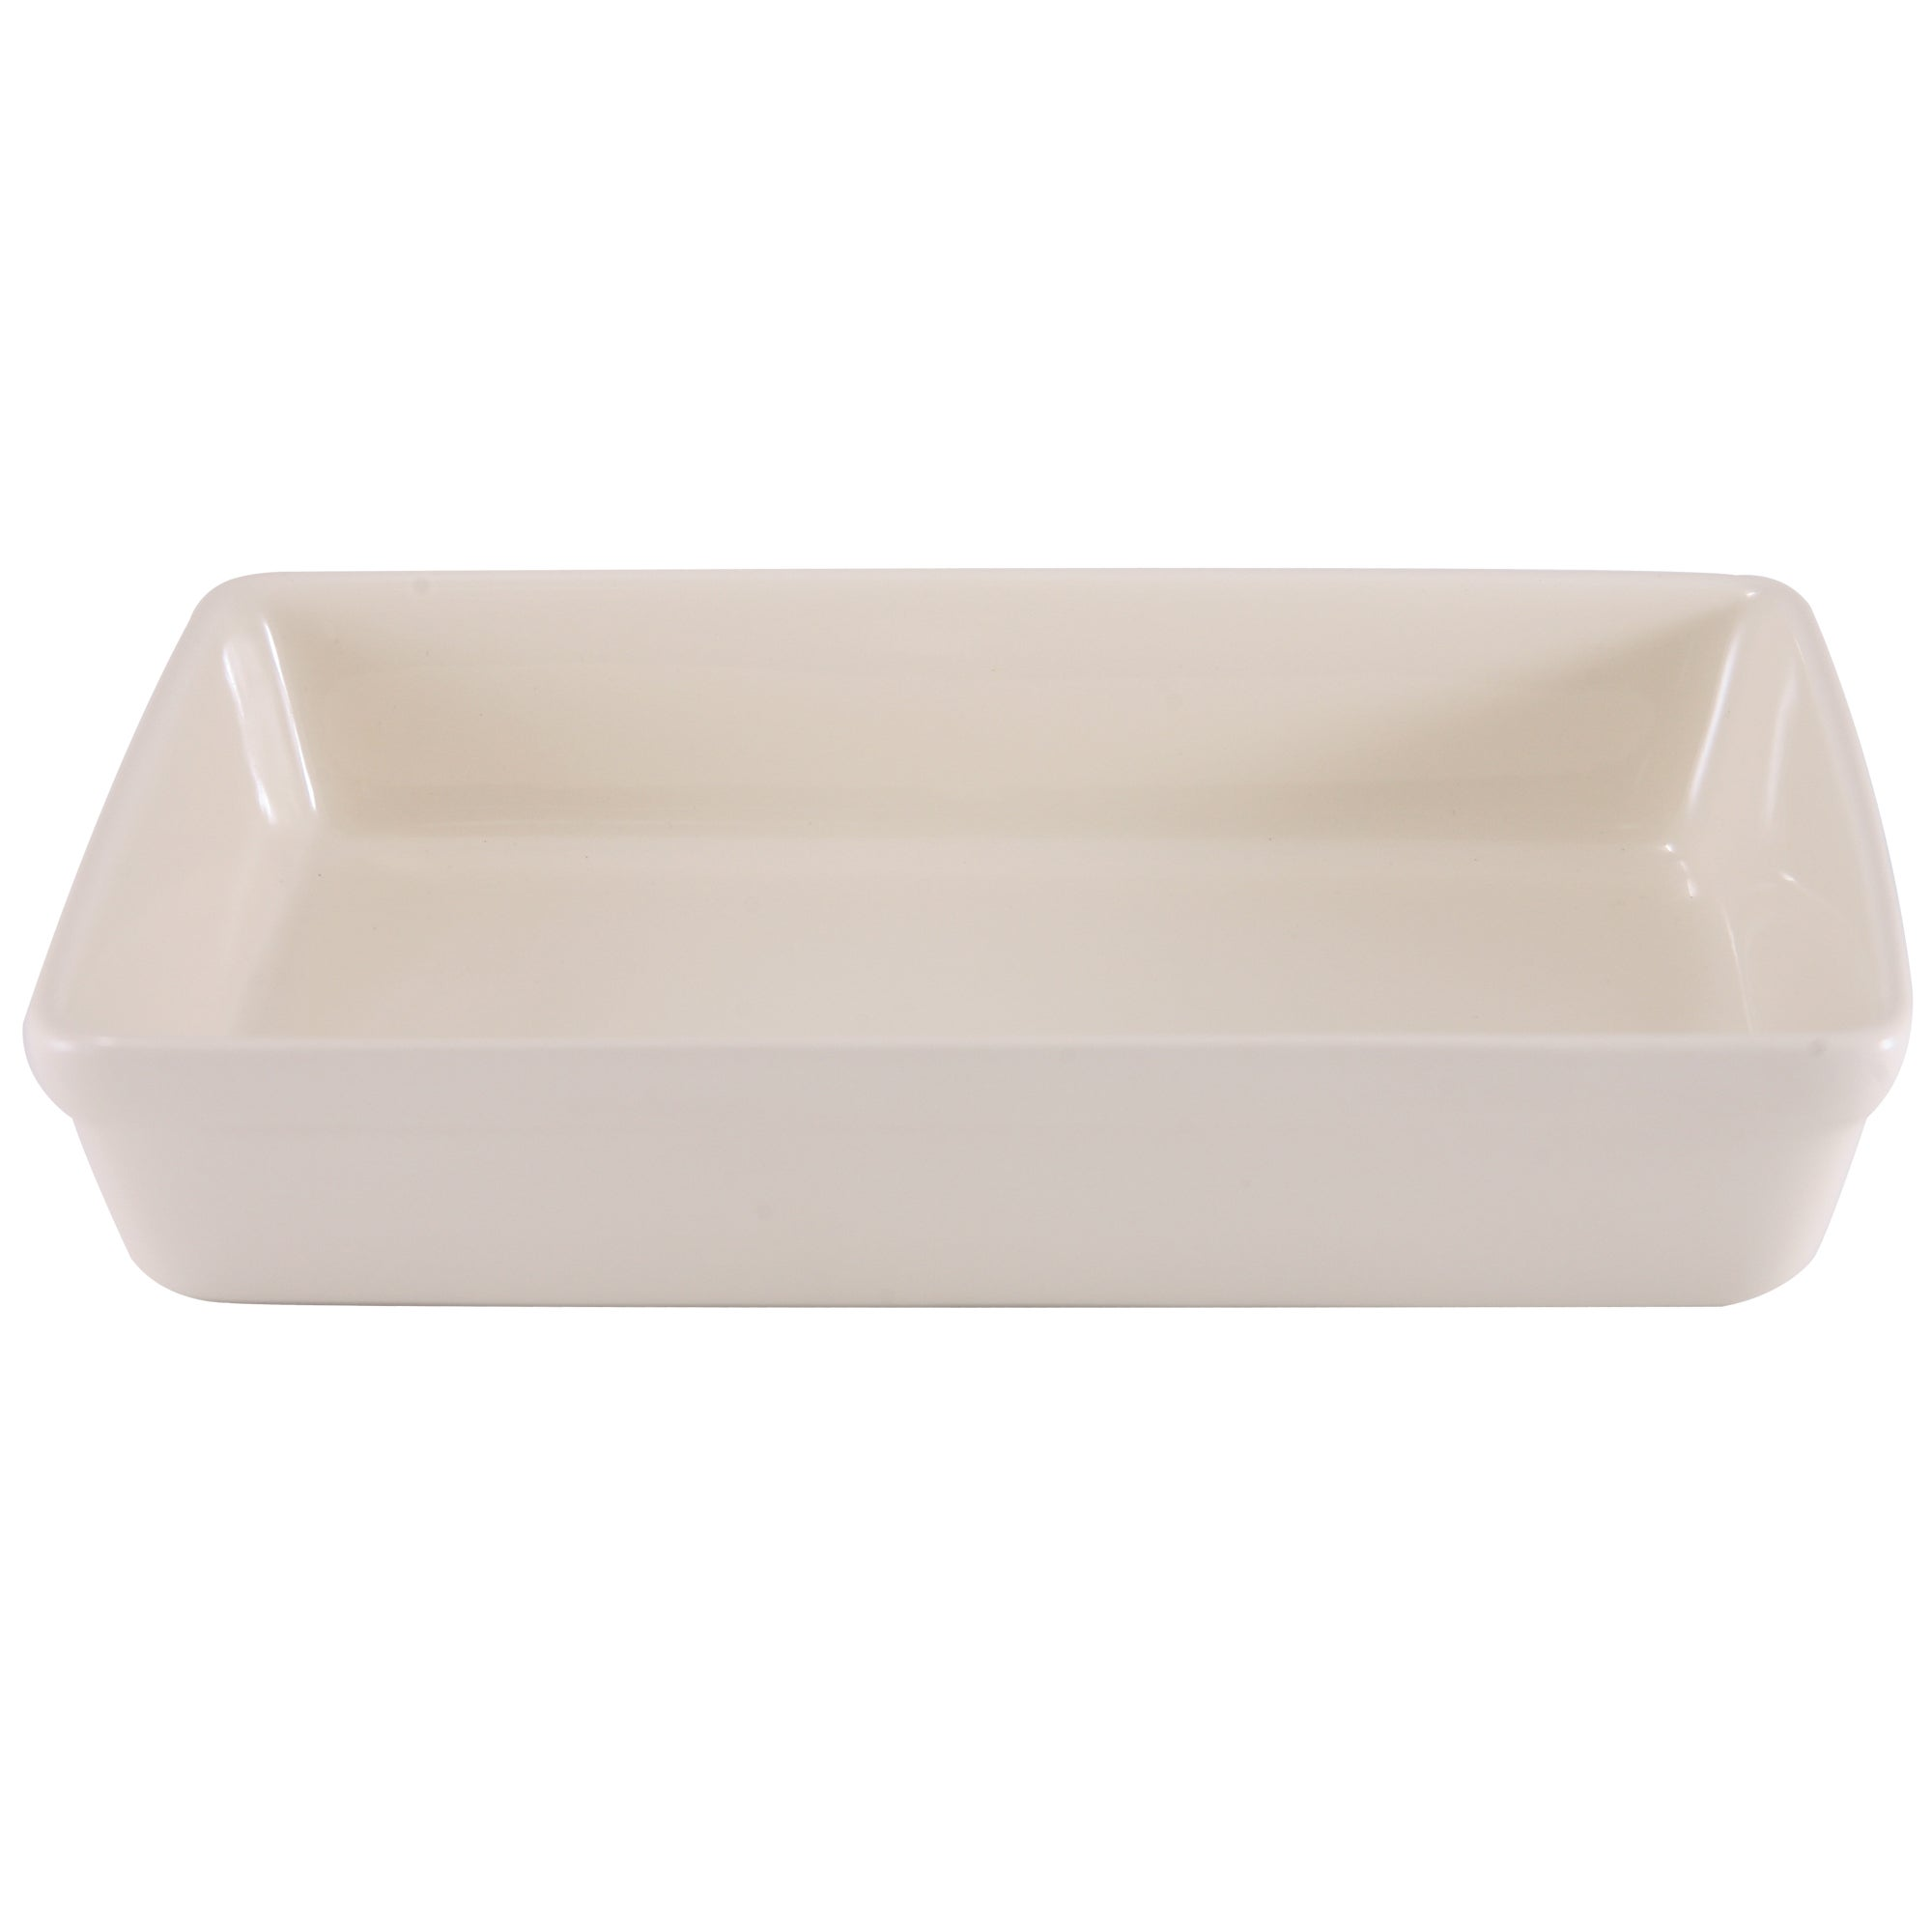 Cream Farmhouse Collection Rectangular Roaster